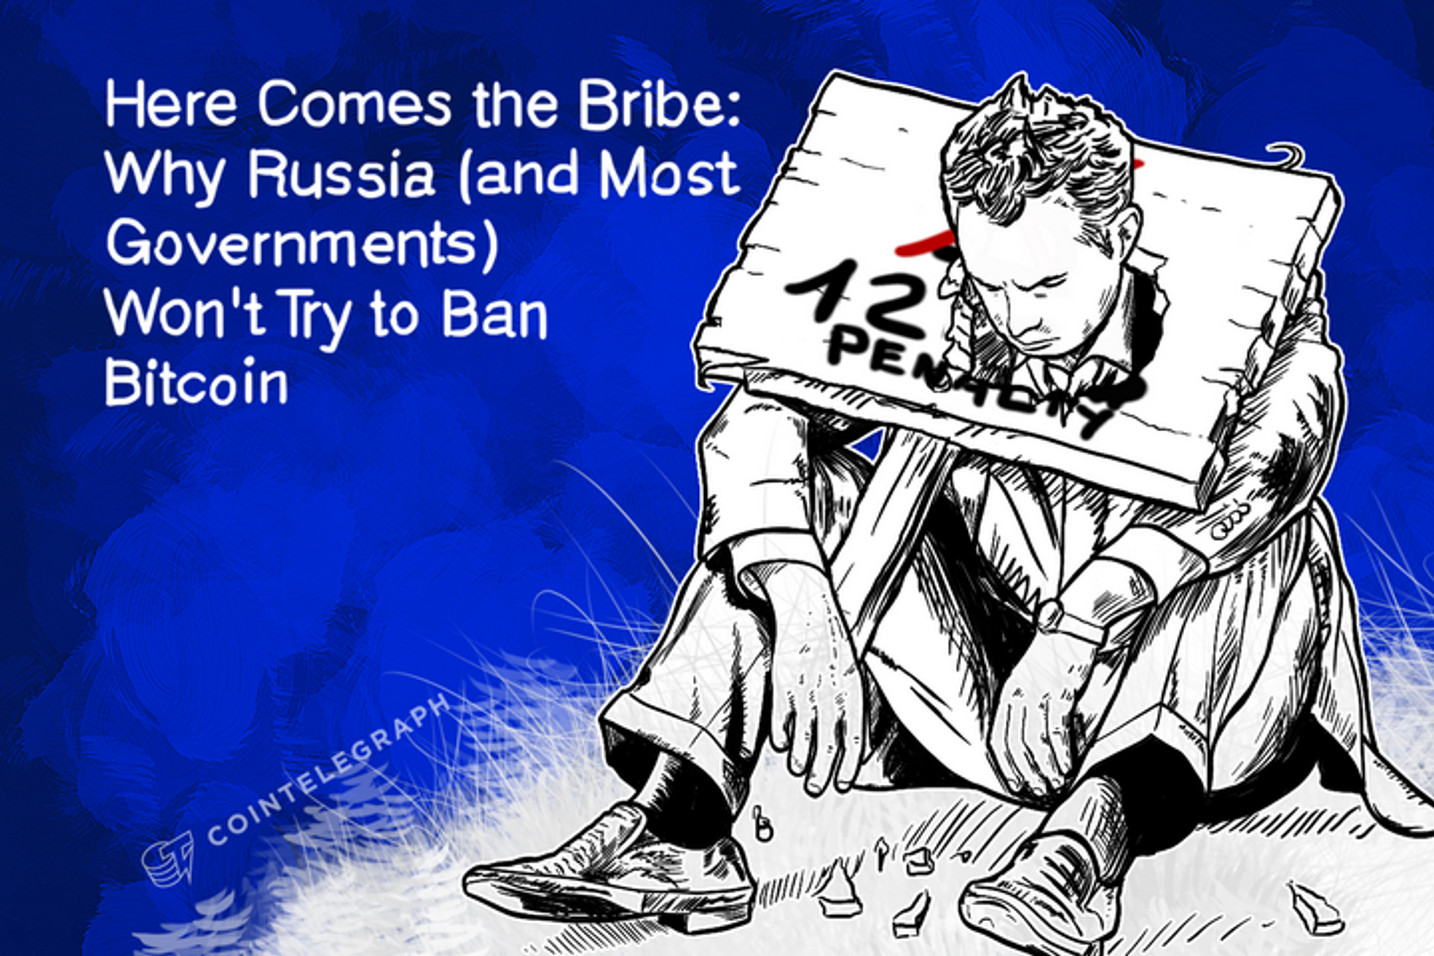 Here Comes the Bribe: Why Russia (and Most Governments) Won't Try to Ban Bitcoin